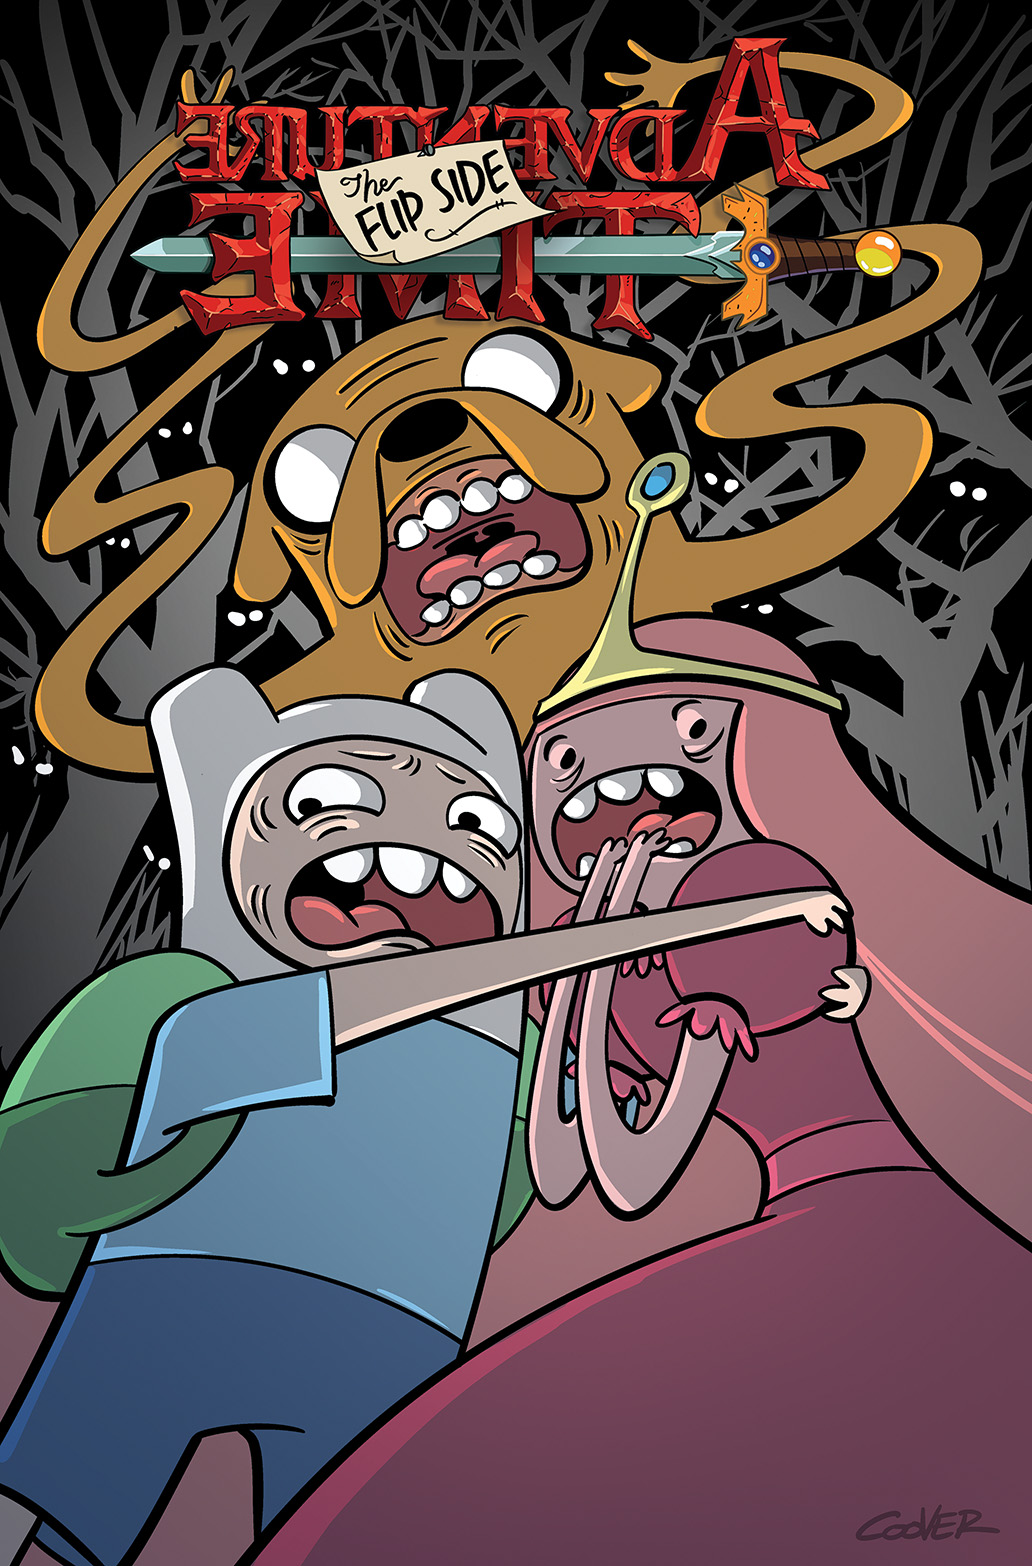 ADVENTURE TIME: THE FLIP SIDE #6 Cover A by Wook Jin Clark